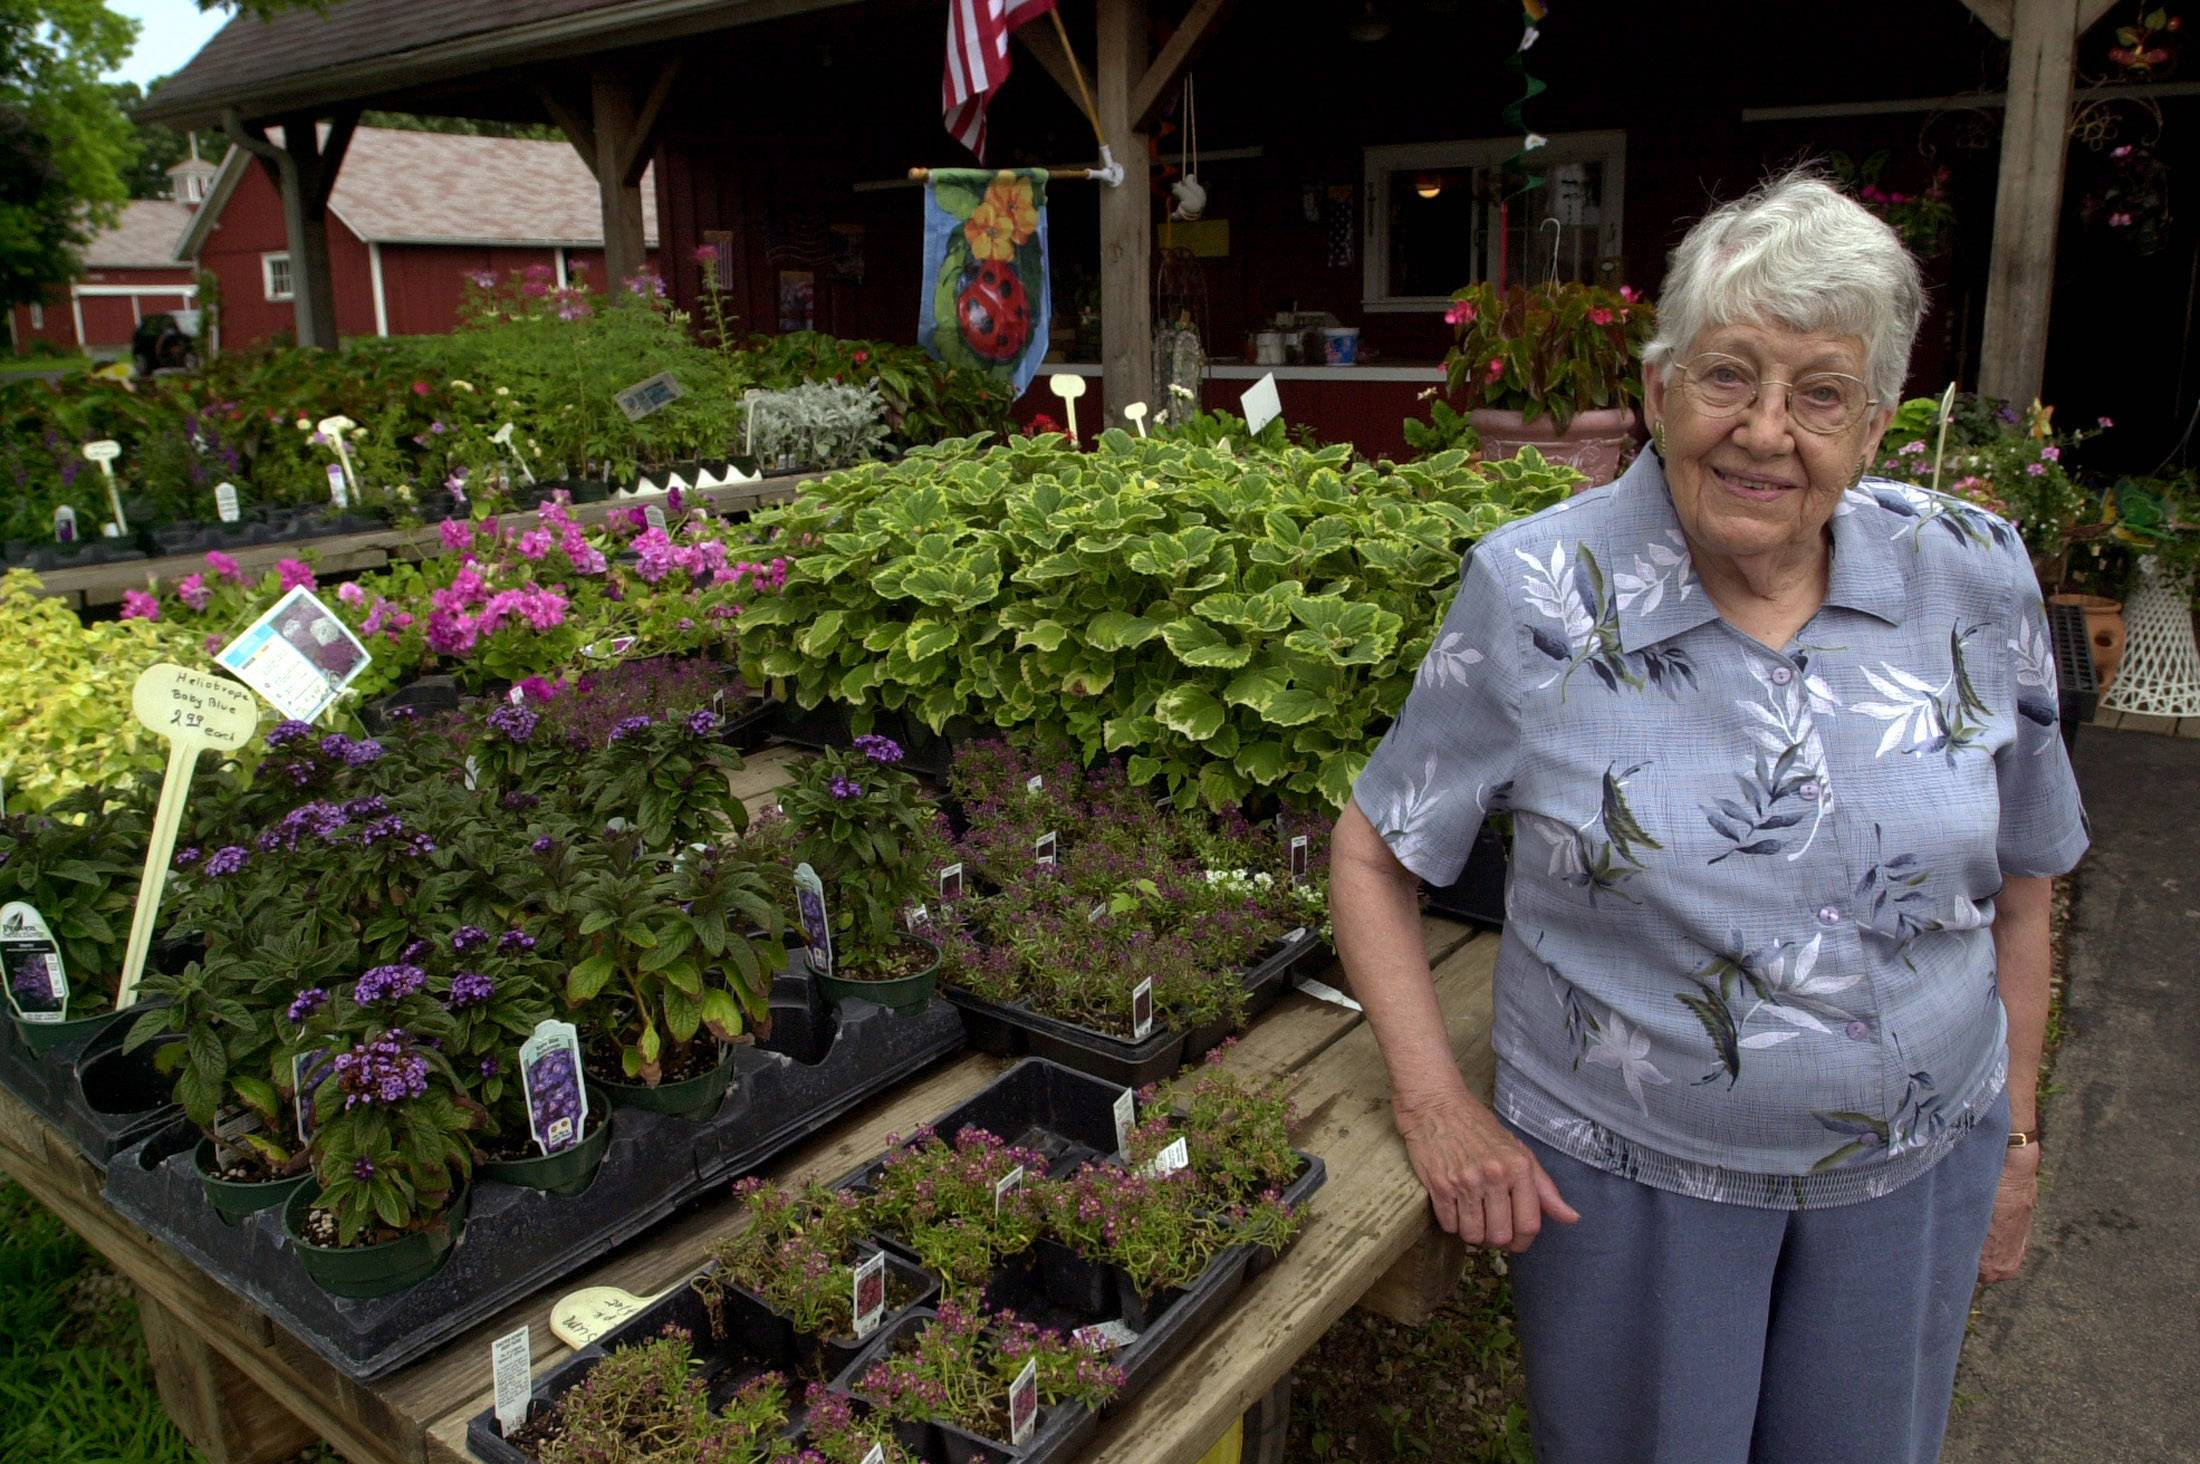 Ramona Feltes, longtime owner of Sonny Acres Farm in West Chicago, died earlier this month at age 98.